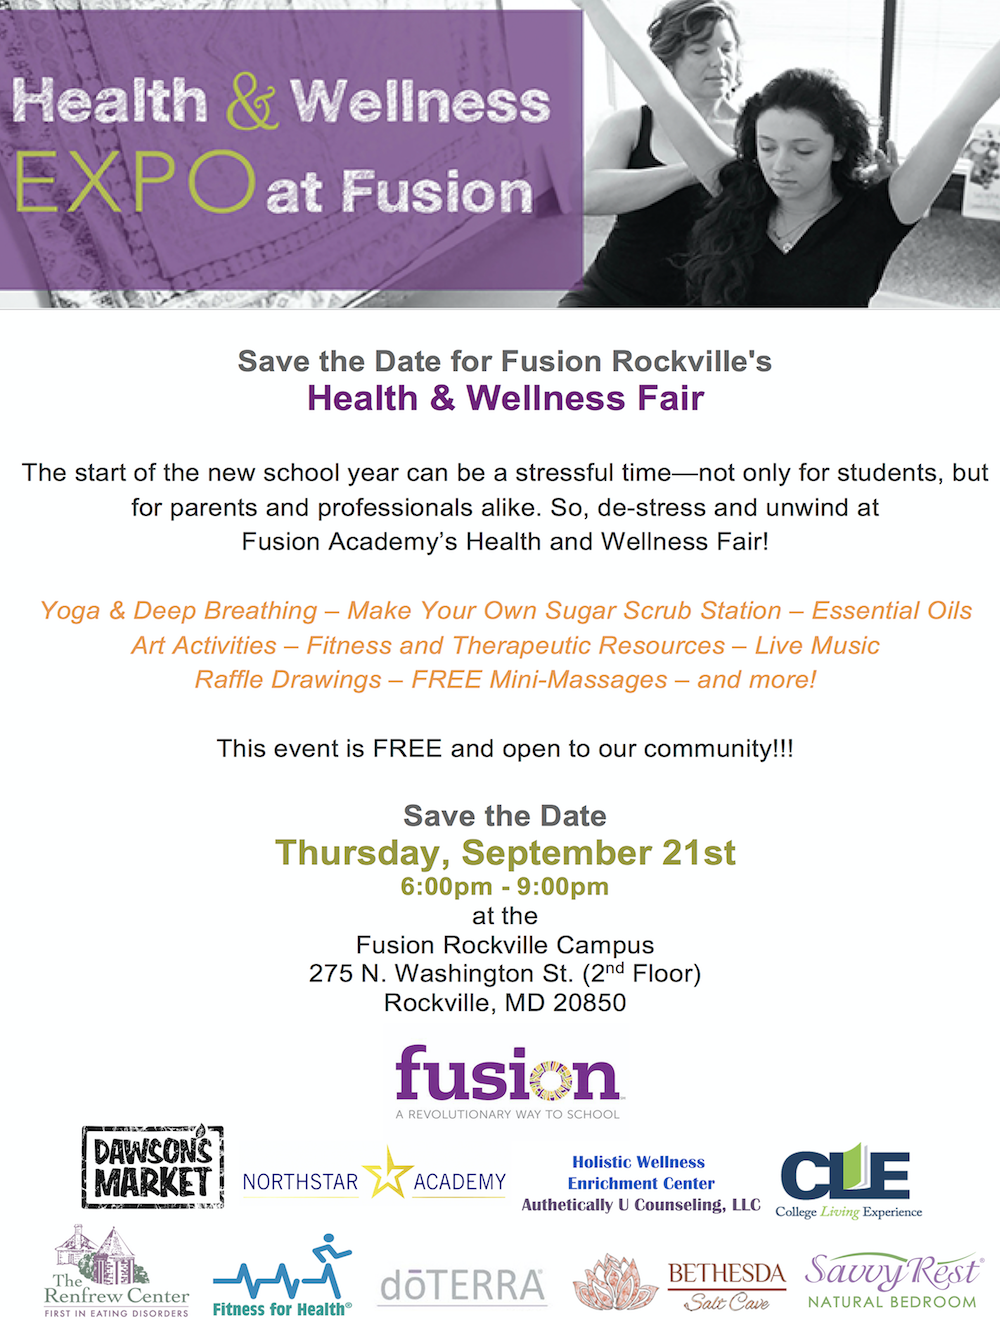 Health and Wellness Expo at Fusion!